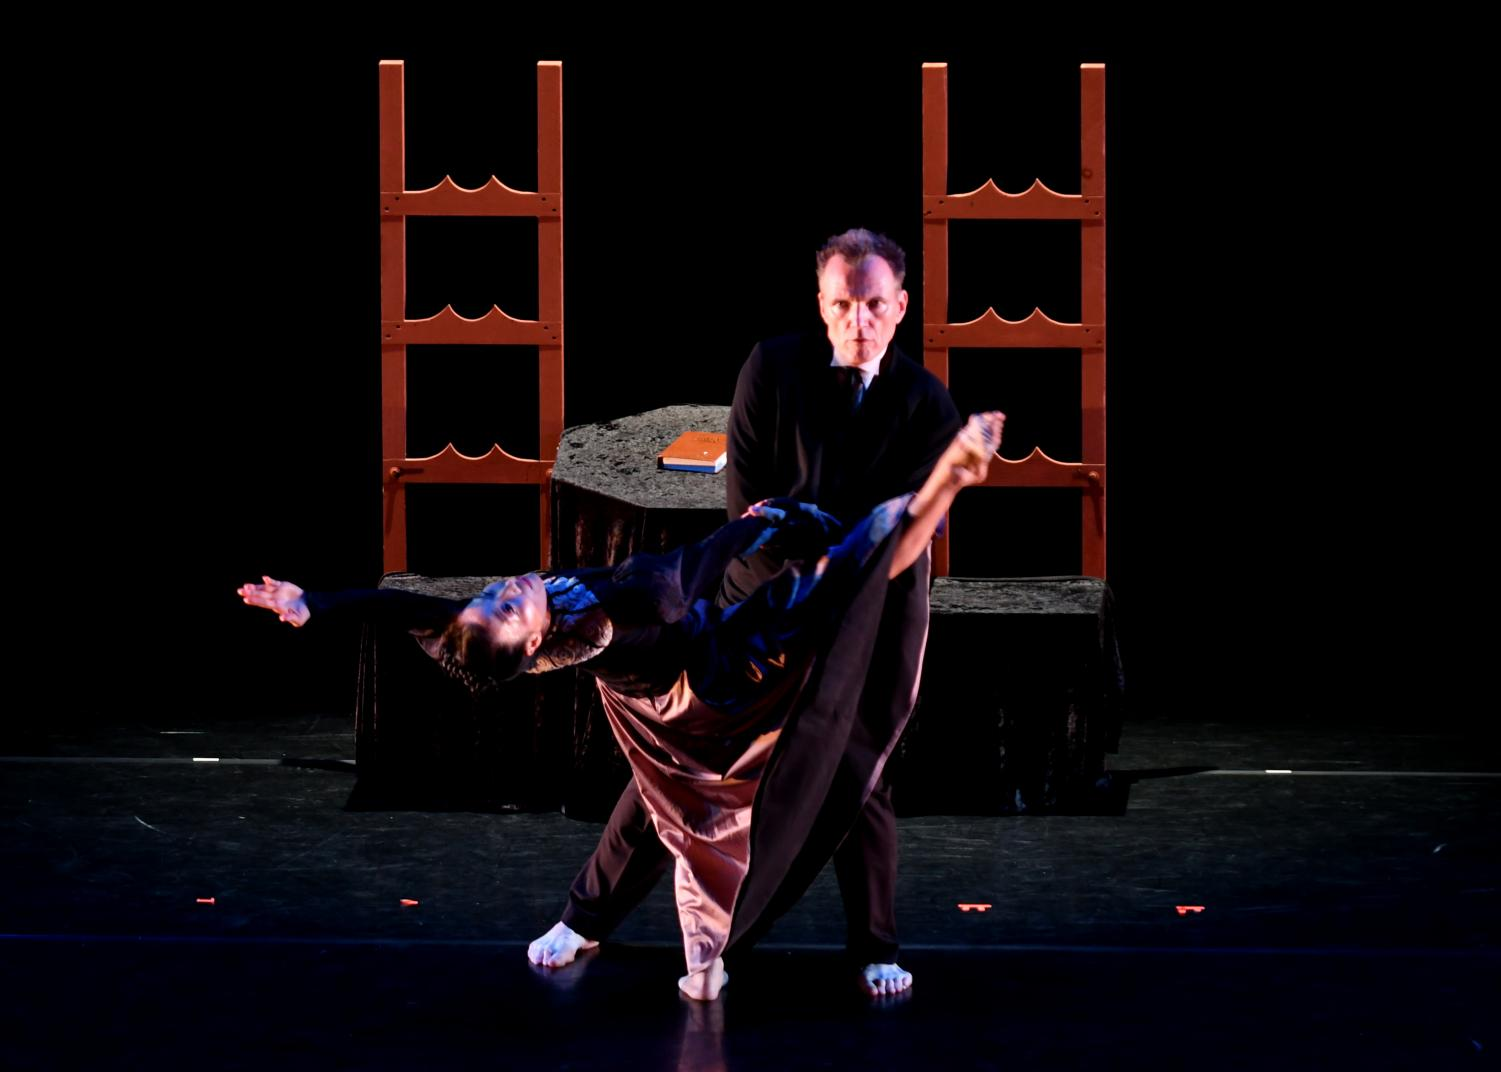 John Pennington and Li Rothermich from the Pennington Dance Group perform